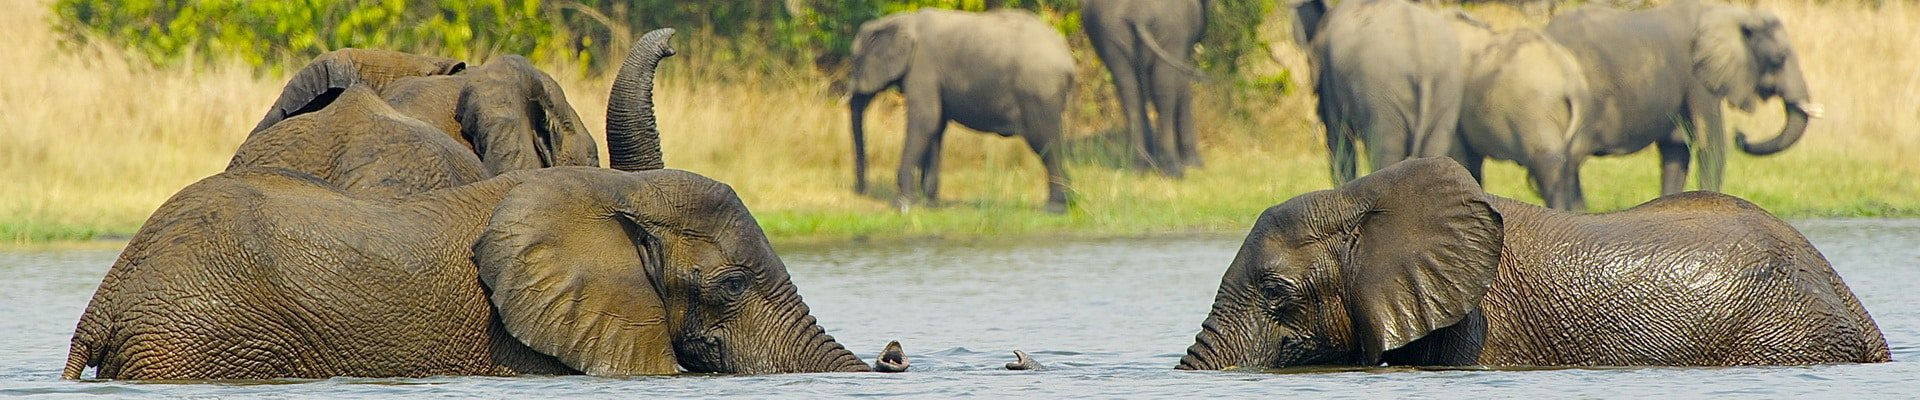 Elephants play with each other